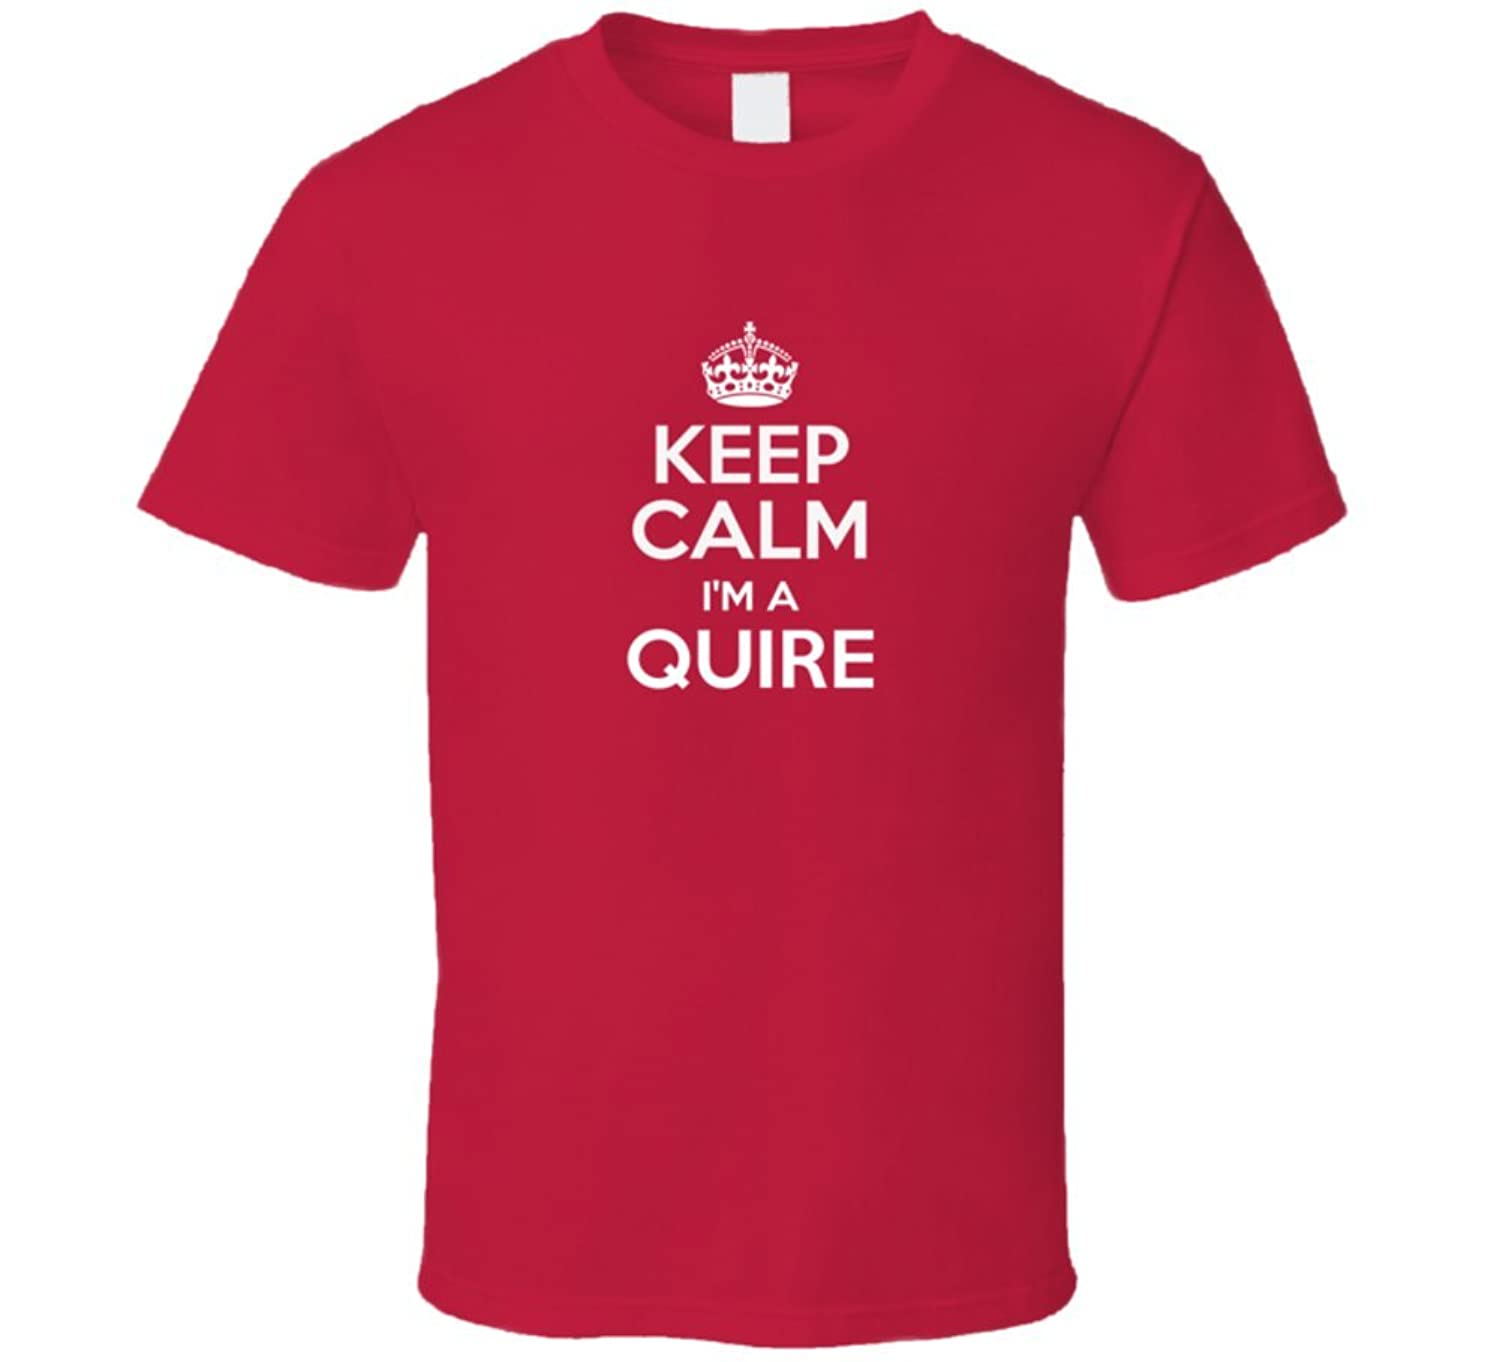 Подробнее о Quire Keep Calm Parody Family Tee T Shirt s quire станок для бритья s quire ra98black